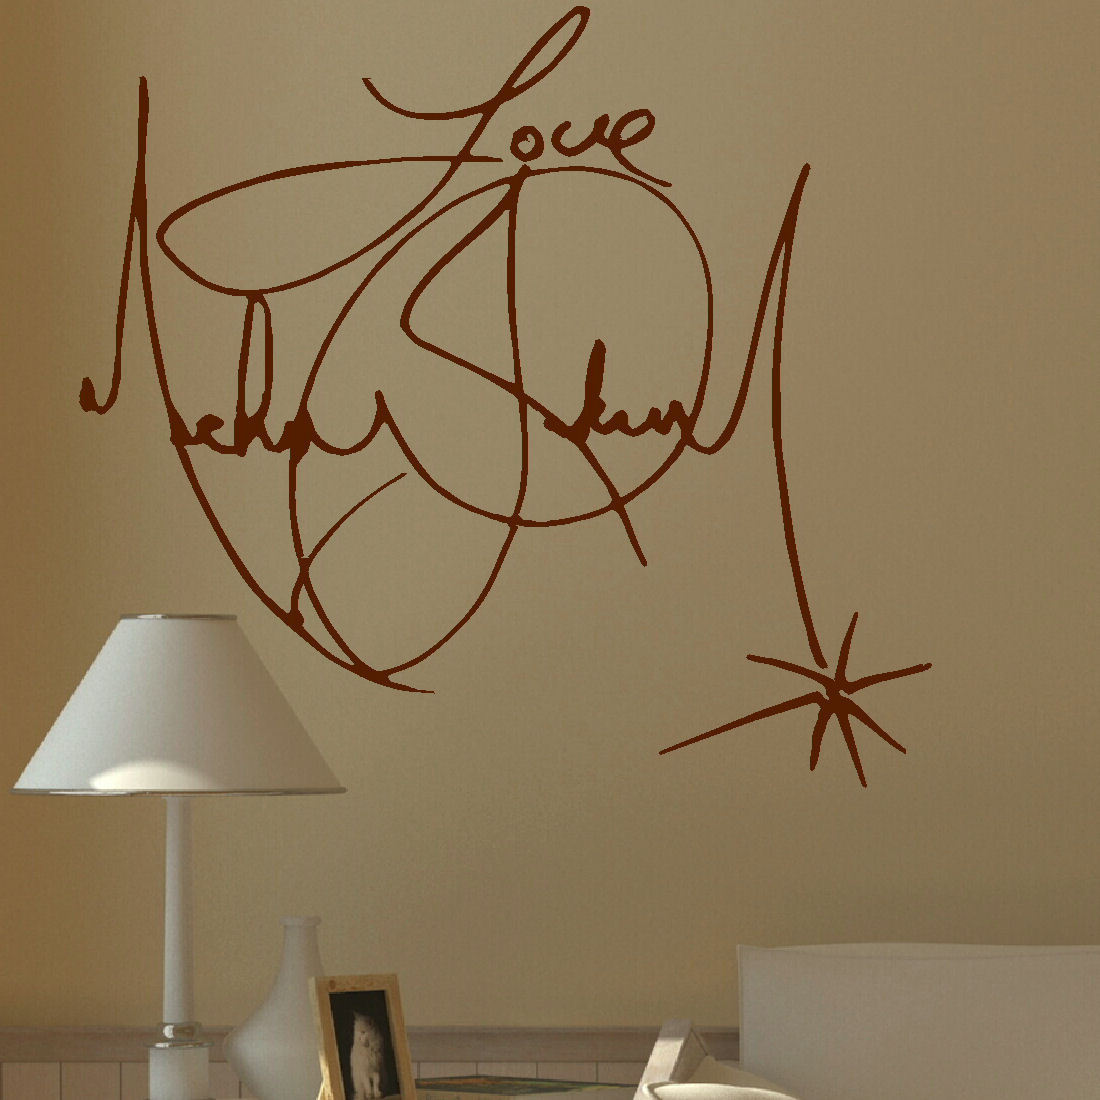 ... WALL MURAL GIANT ART STICKER DECAL VINYL. Charity ... Part 72